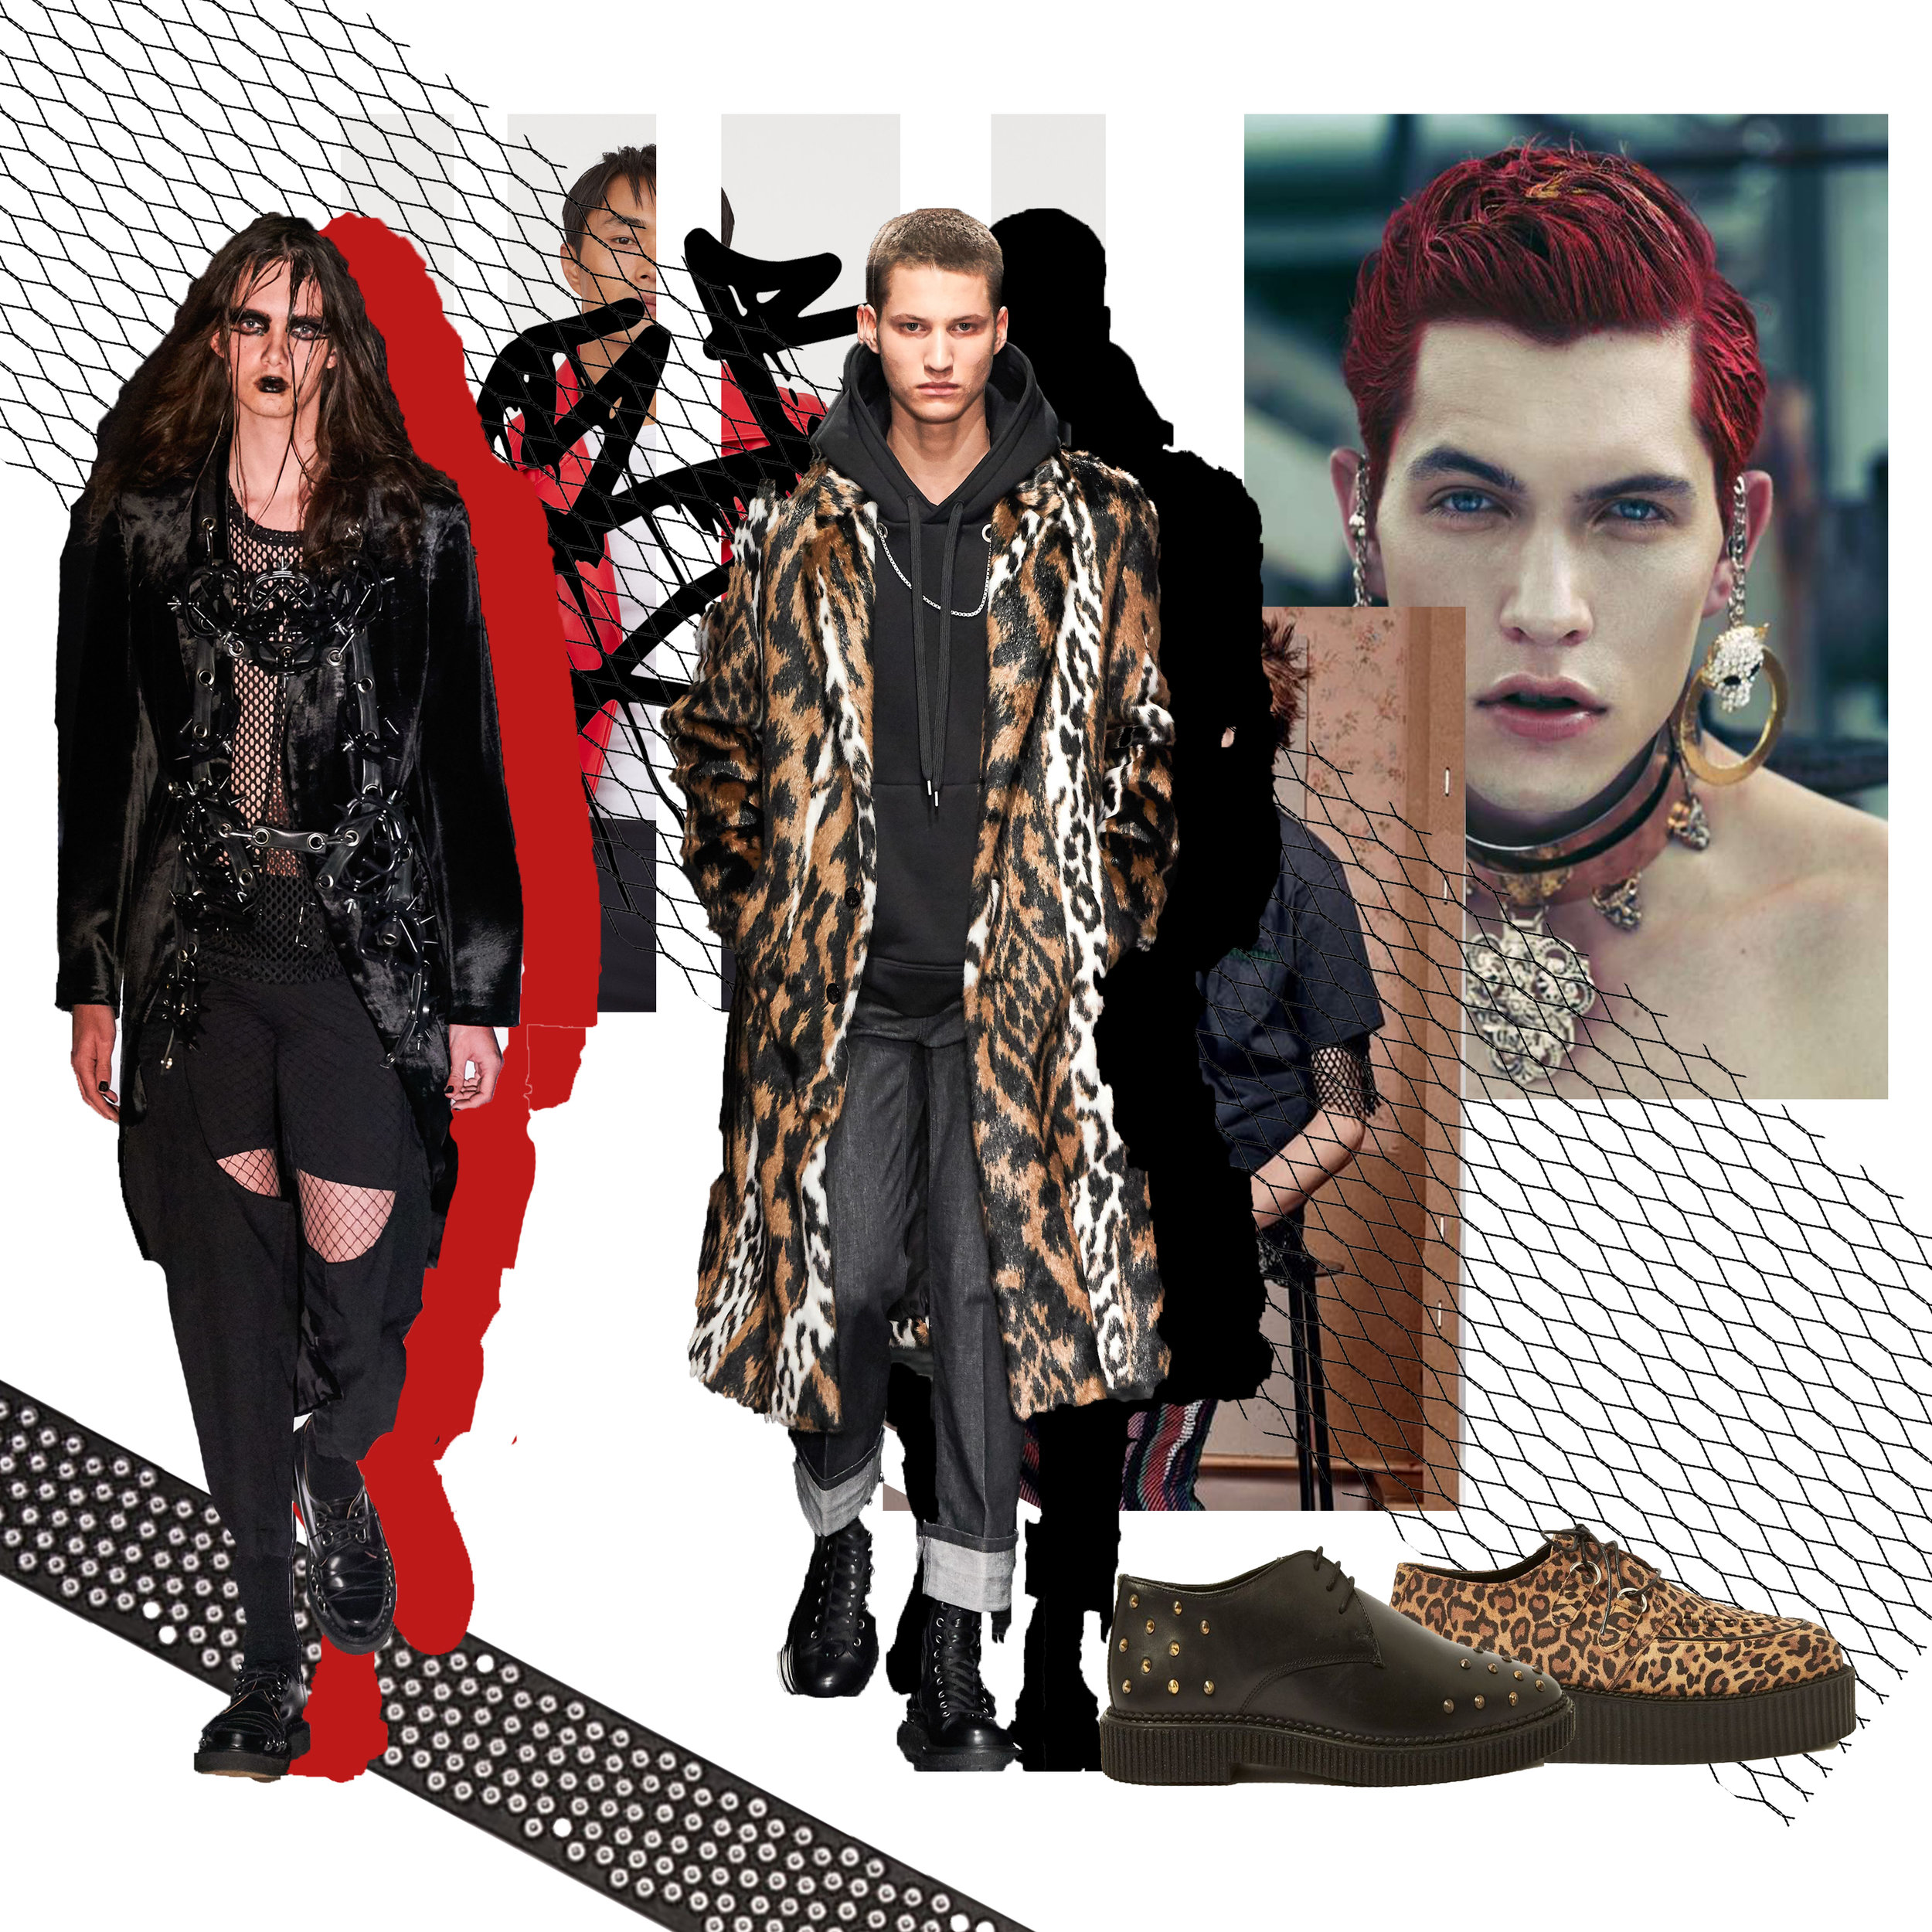 The Punk Prince - For a bold and intense look, focus your fashion around the revival of Punk. From Celine to Comme des Garçons, punk-inspired looks have taken over men's fashion this season. It's all about balancing leather with bold animal prints and hardware. When it comes to accessories, more is more! Silver chain accessories and artisanal rings soften a more dramatic persona, and studded boots with fetish-inspired detailing updates any look. If you're feeling adventurous, throw in some DIY touches for some added flair and individuality; you might be there to watch, but that doesn't mean you can't rock your own custom couture.